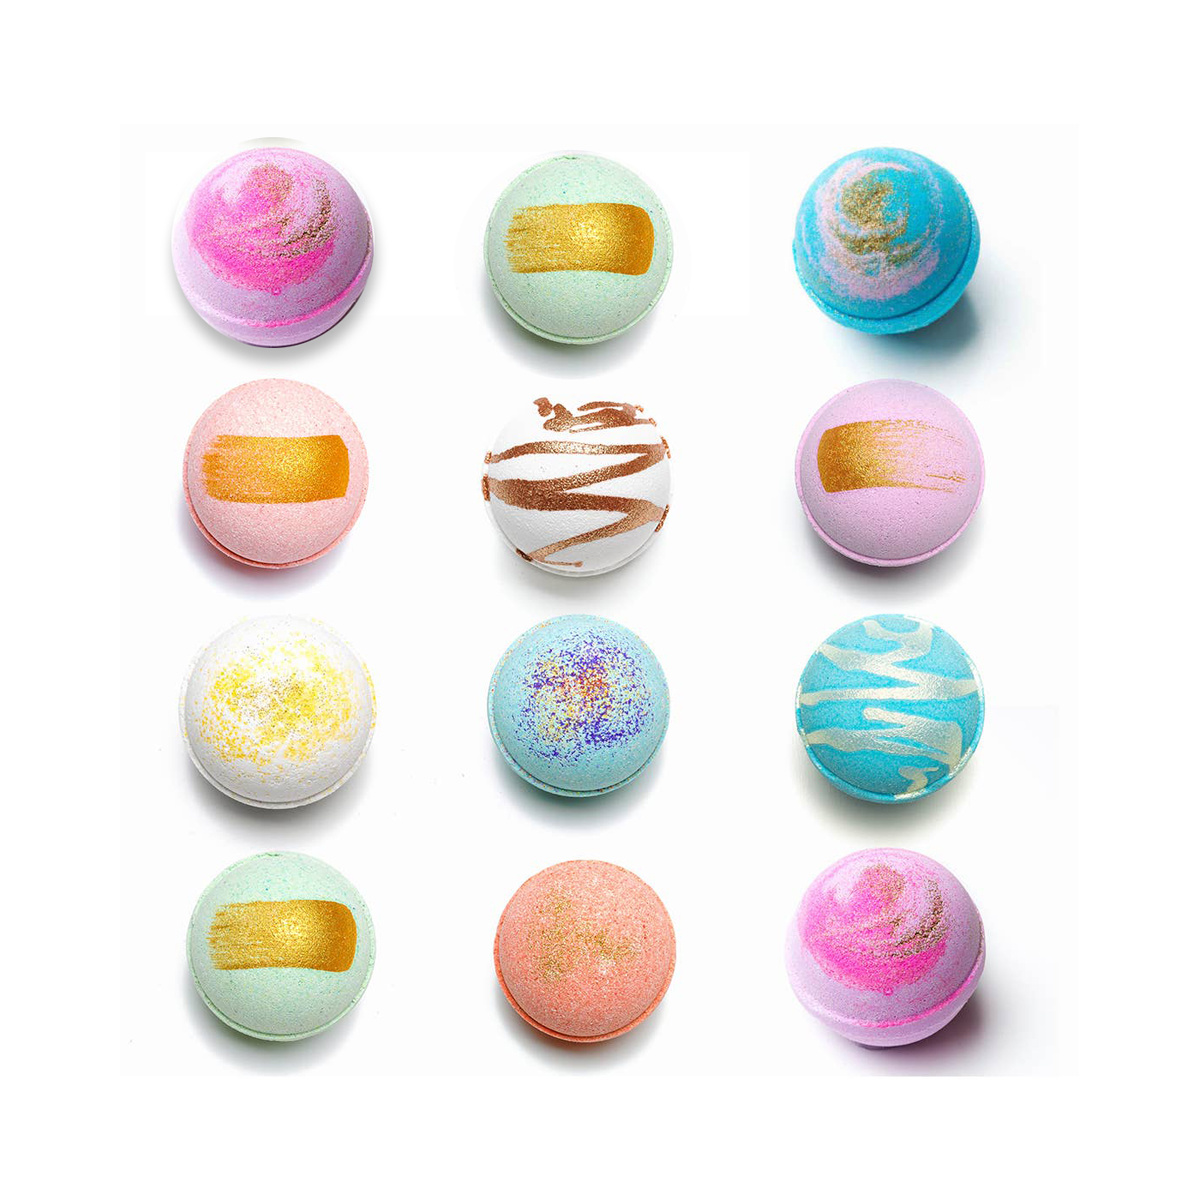 Latika Body Essentials Latika Bath Bombs - Various Scents